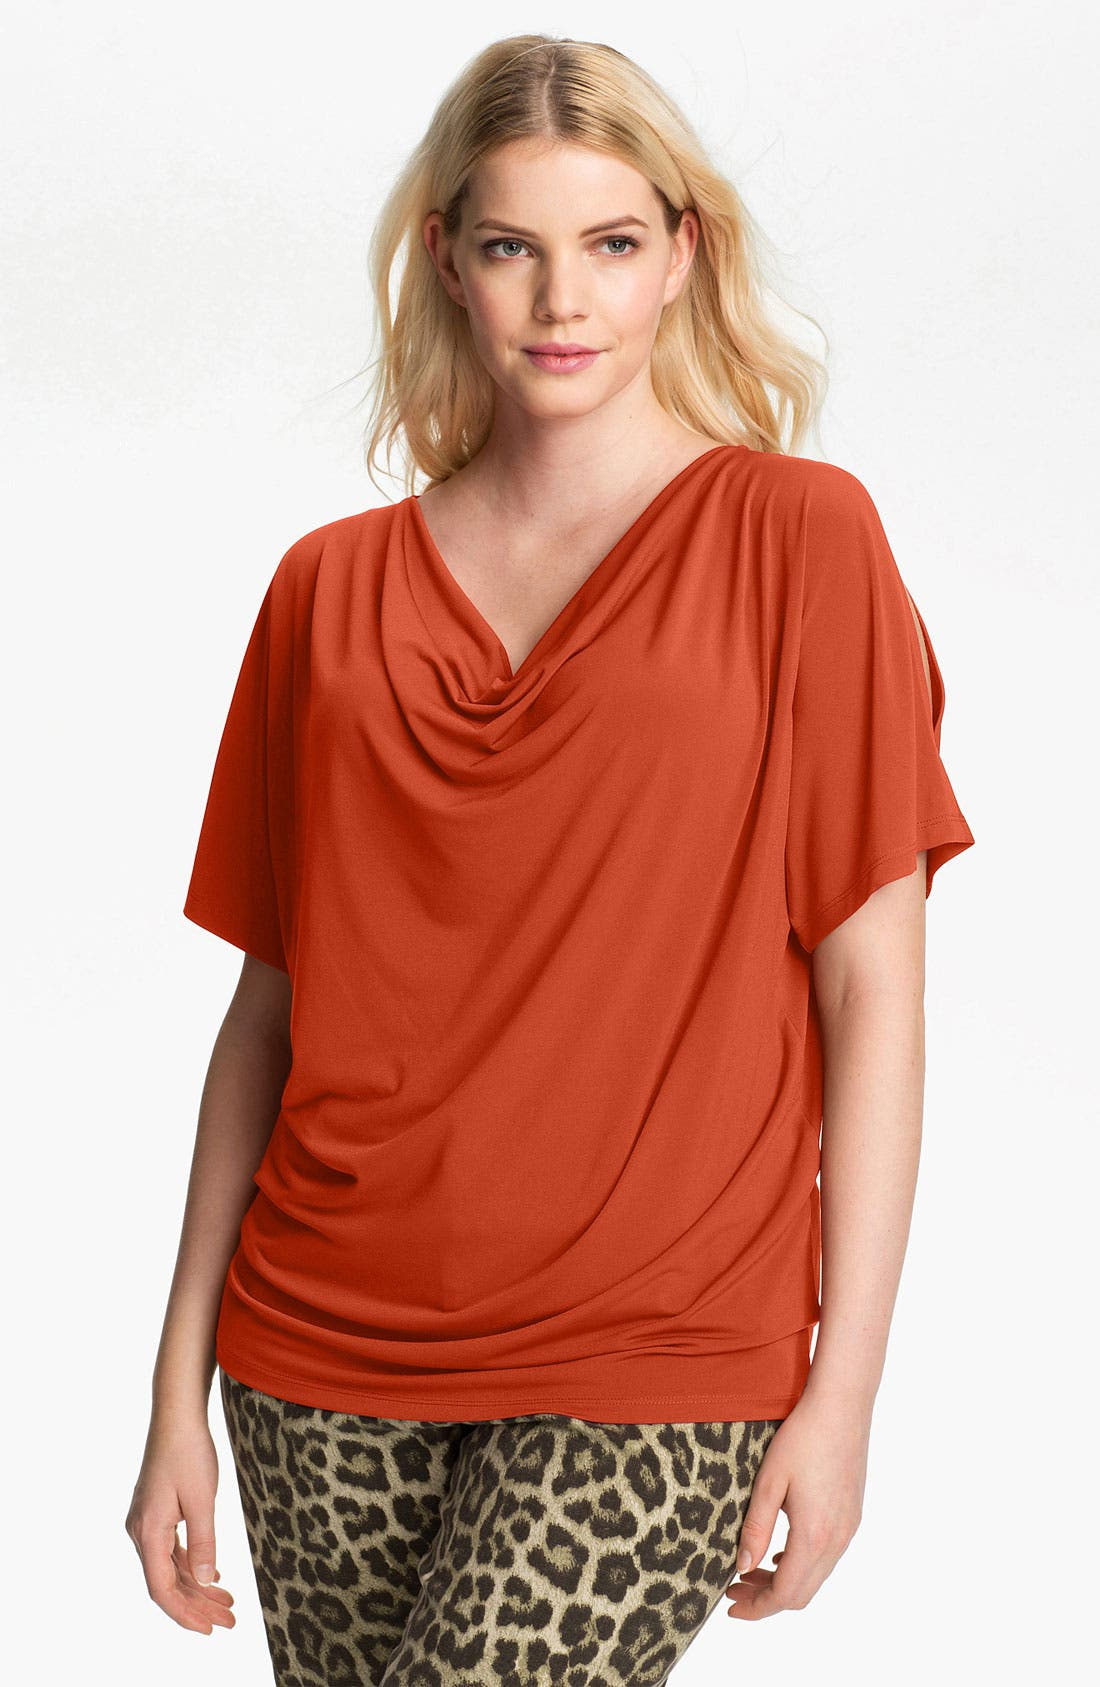 Alternate Image 1 Selected - MICHAEL Michael Kors Cold Shoulder Knit Top (Plus)